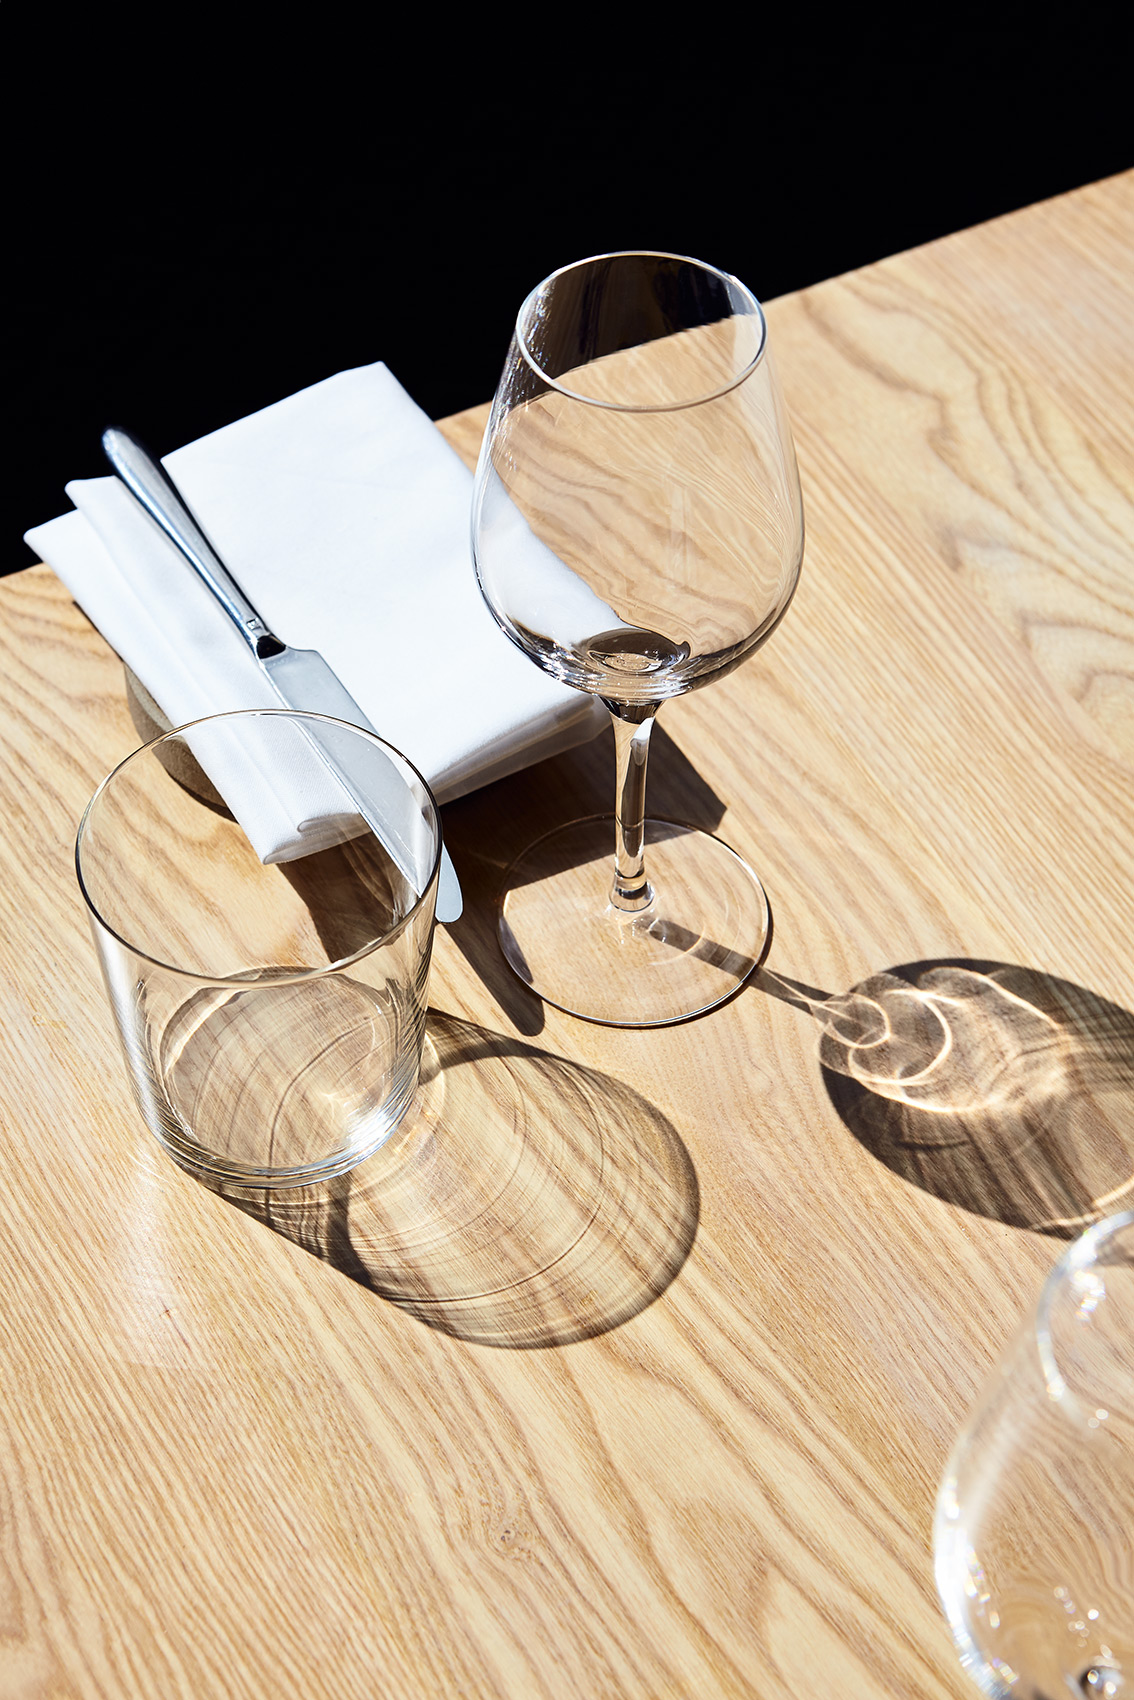 Table, Glasses and Cutlery, Burough Restaurant, Leith Edinburgh